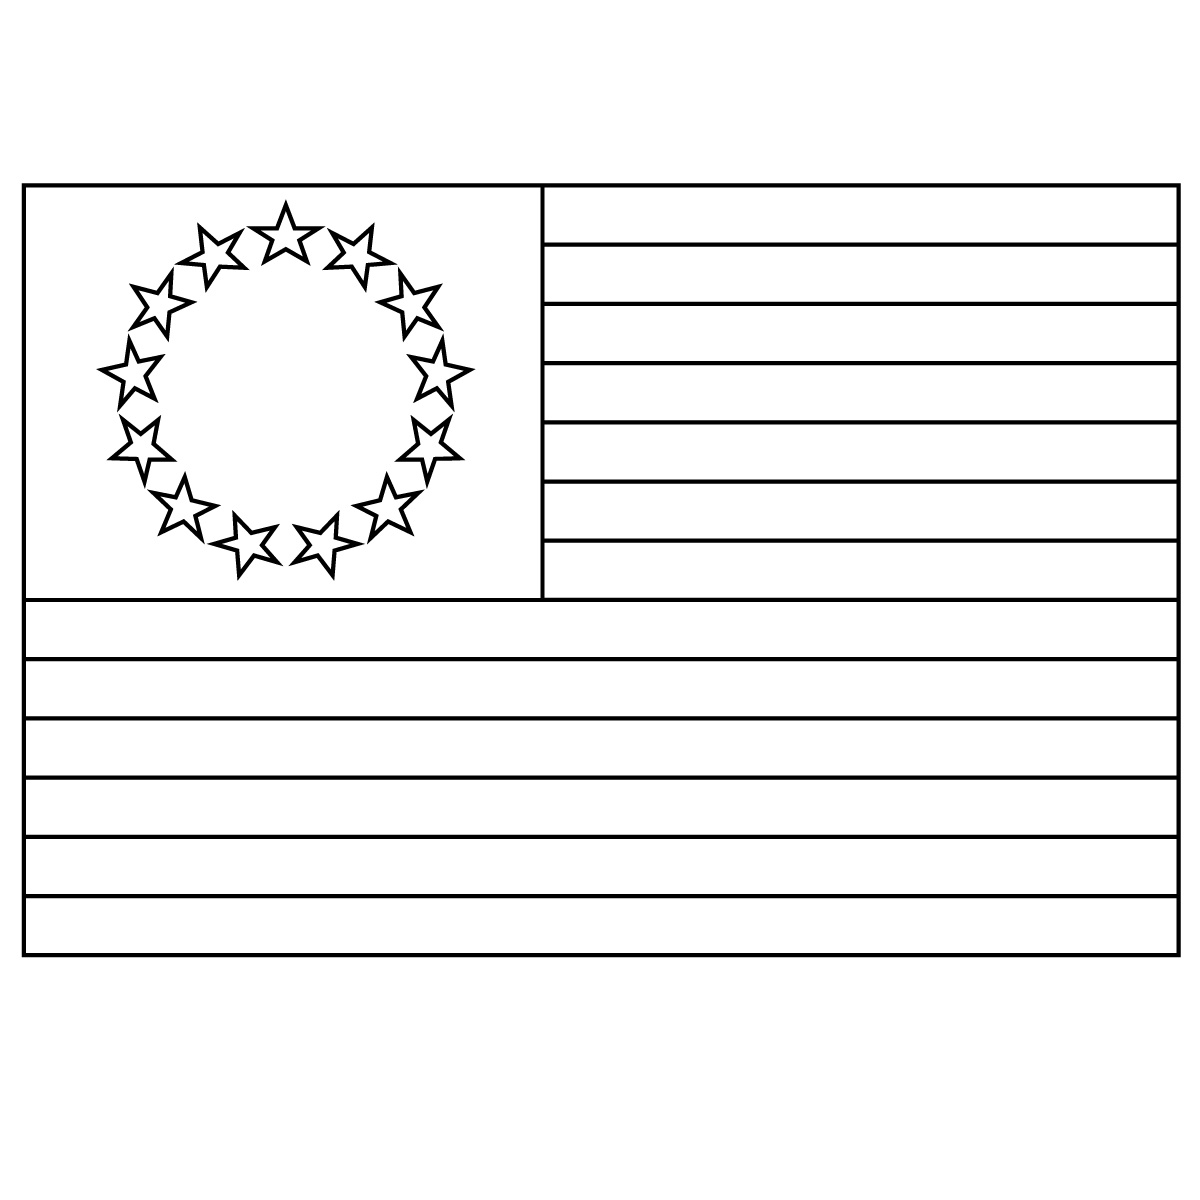 united states flag coloring page clip art united states flag waving in wind bw stars united coloring flag states page